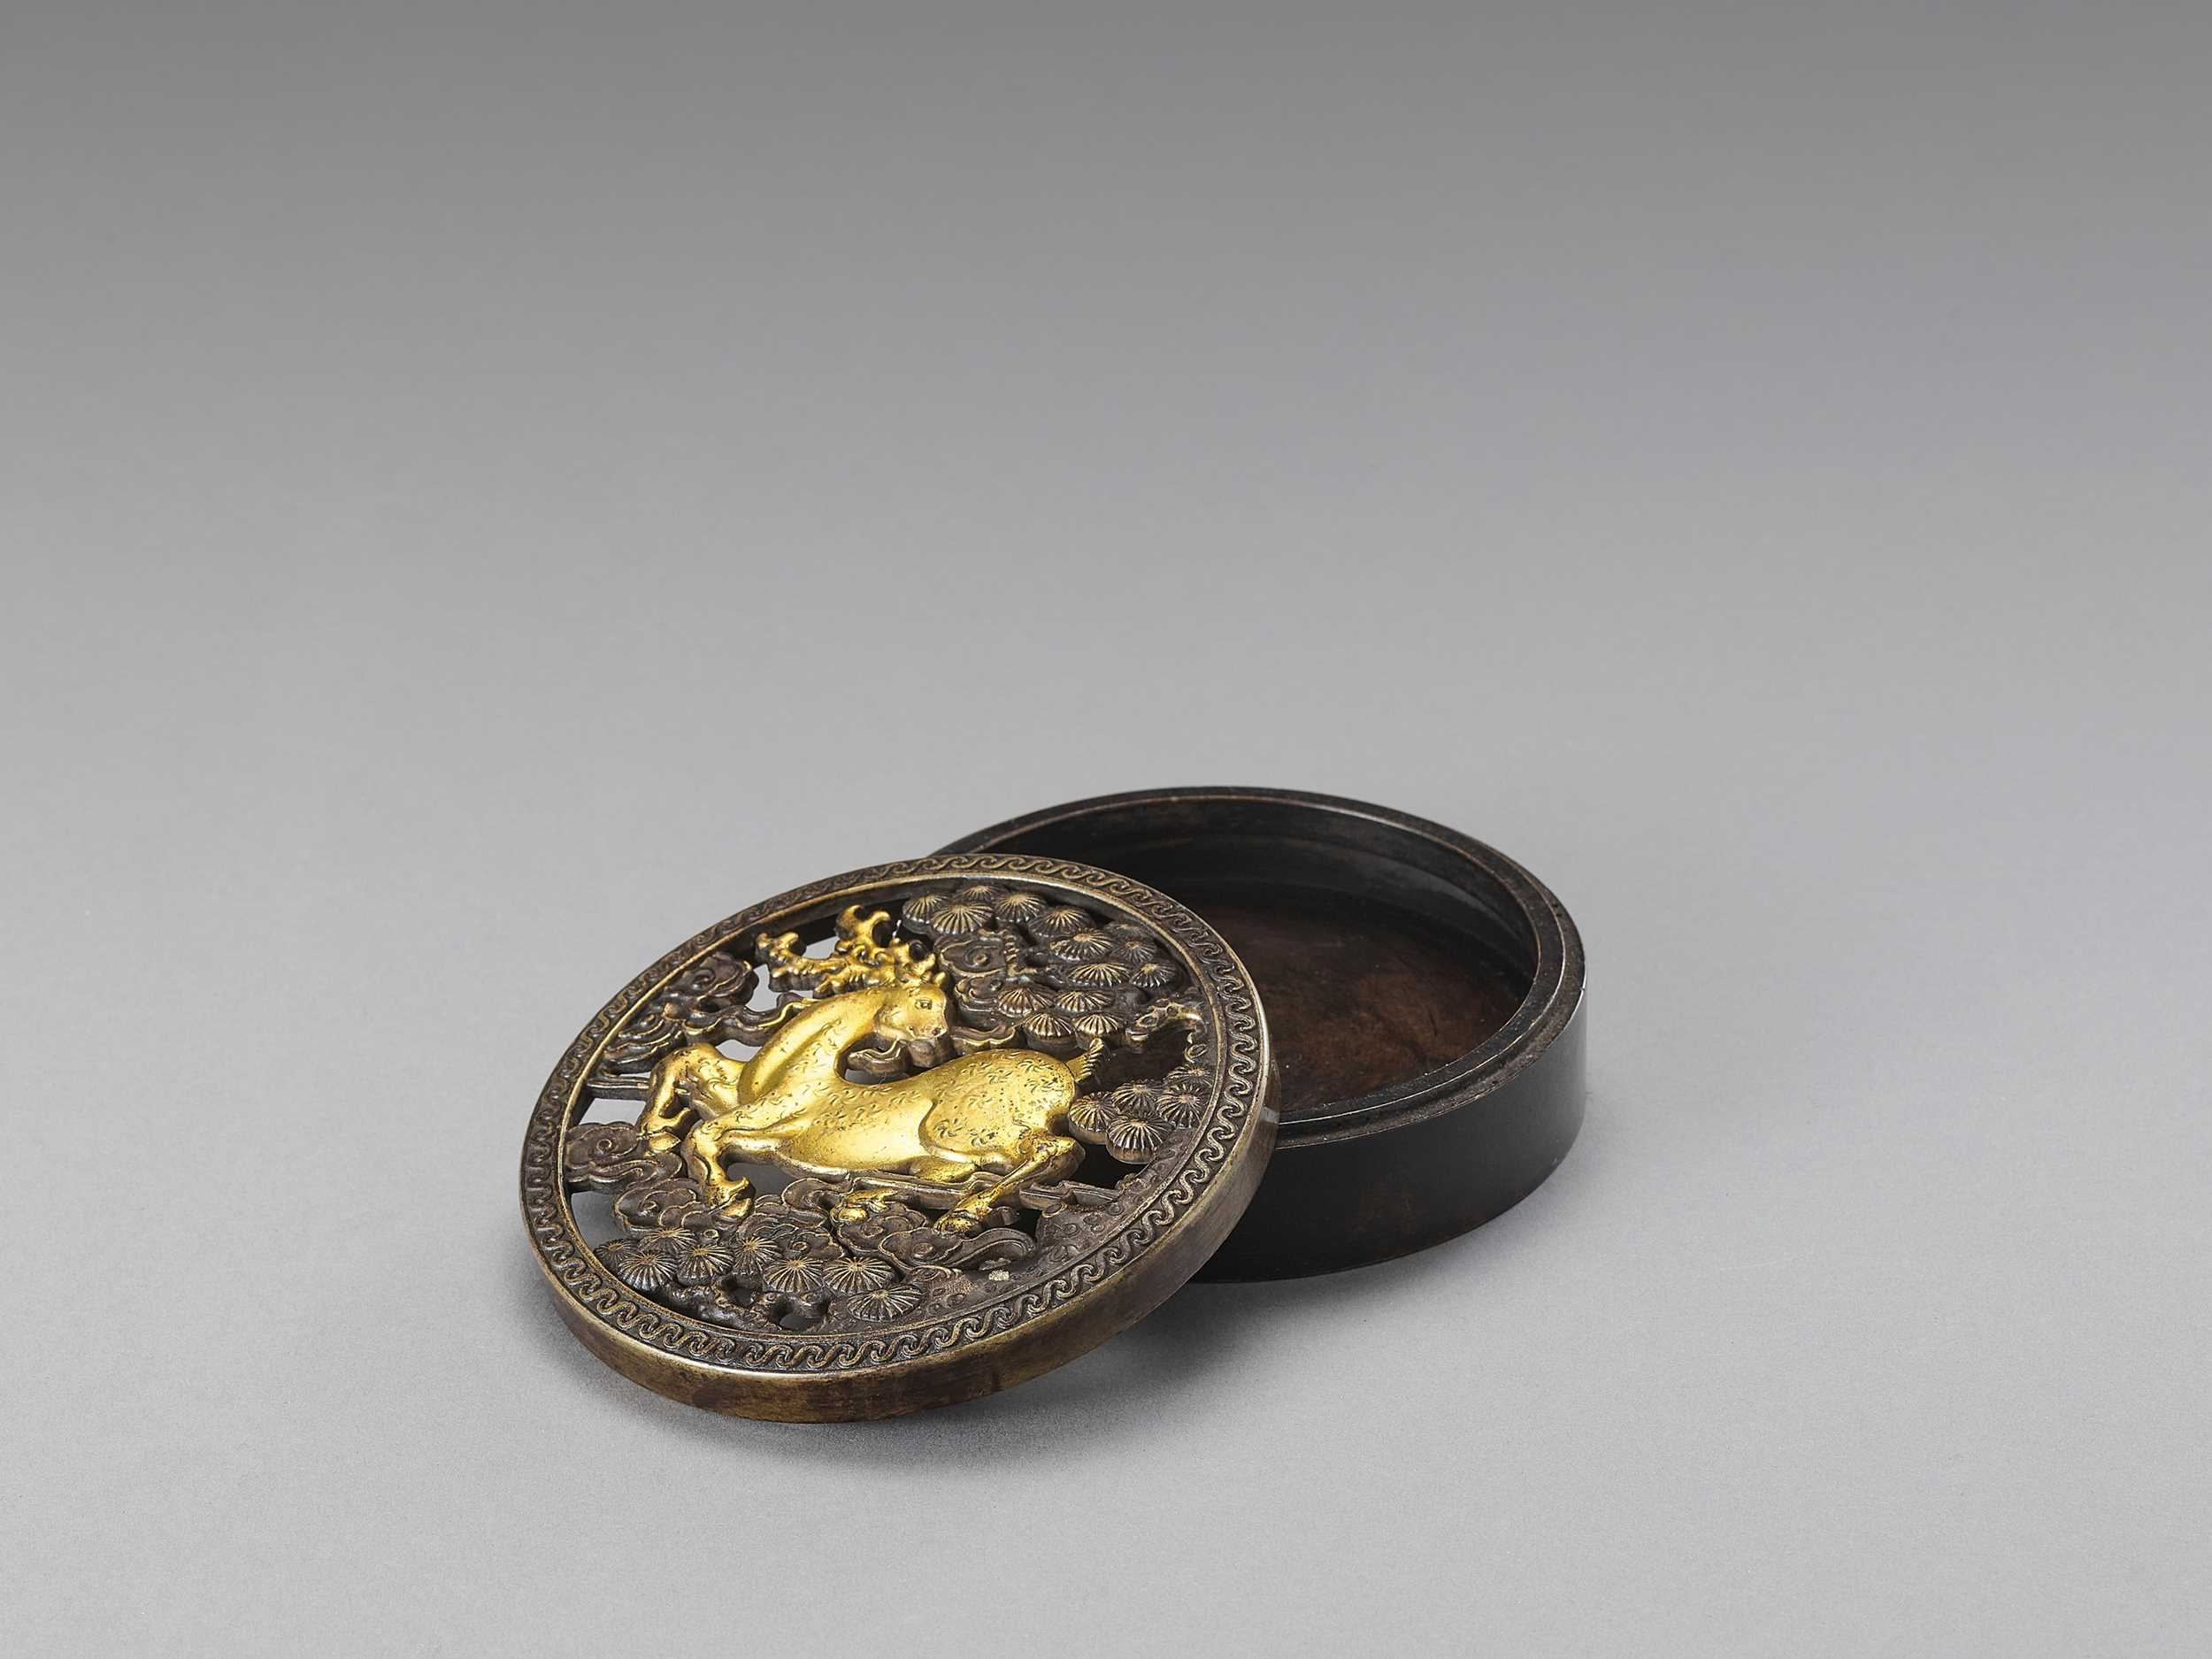 Lot 539 - A PARCEL GILT 'STAG AND PINE' INCENSE BOX, LATE QING TO REPUBLIC